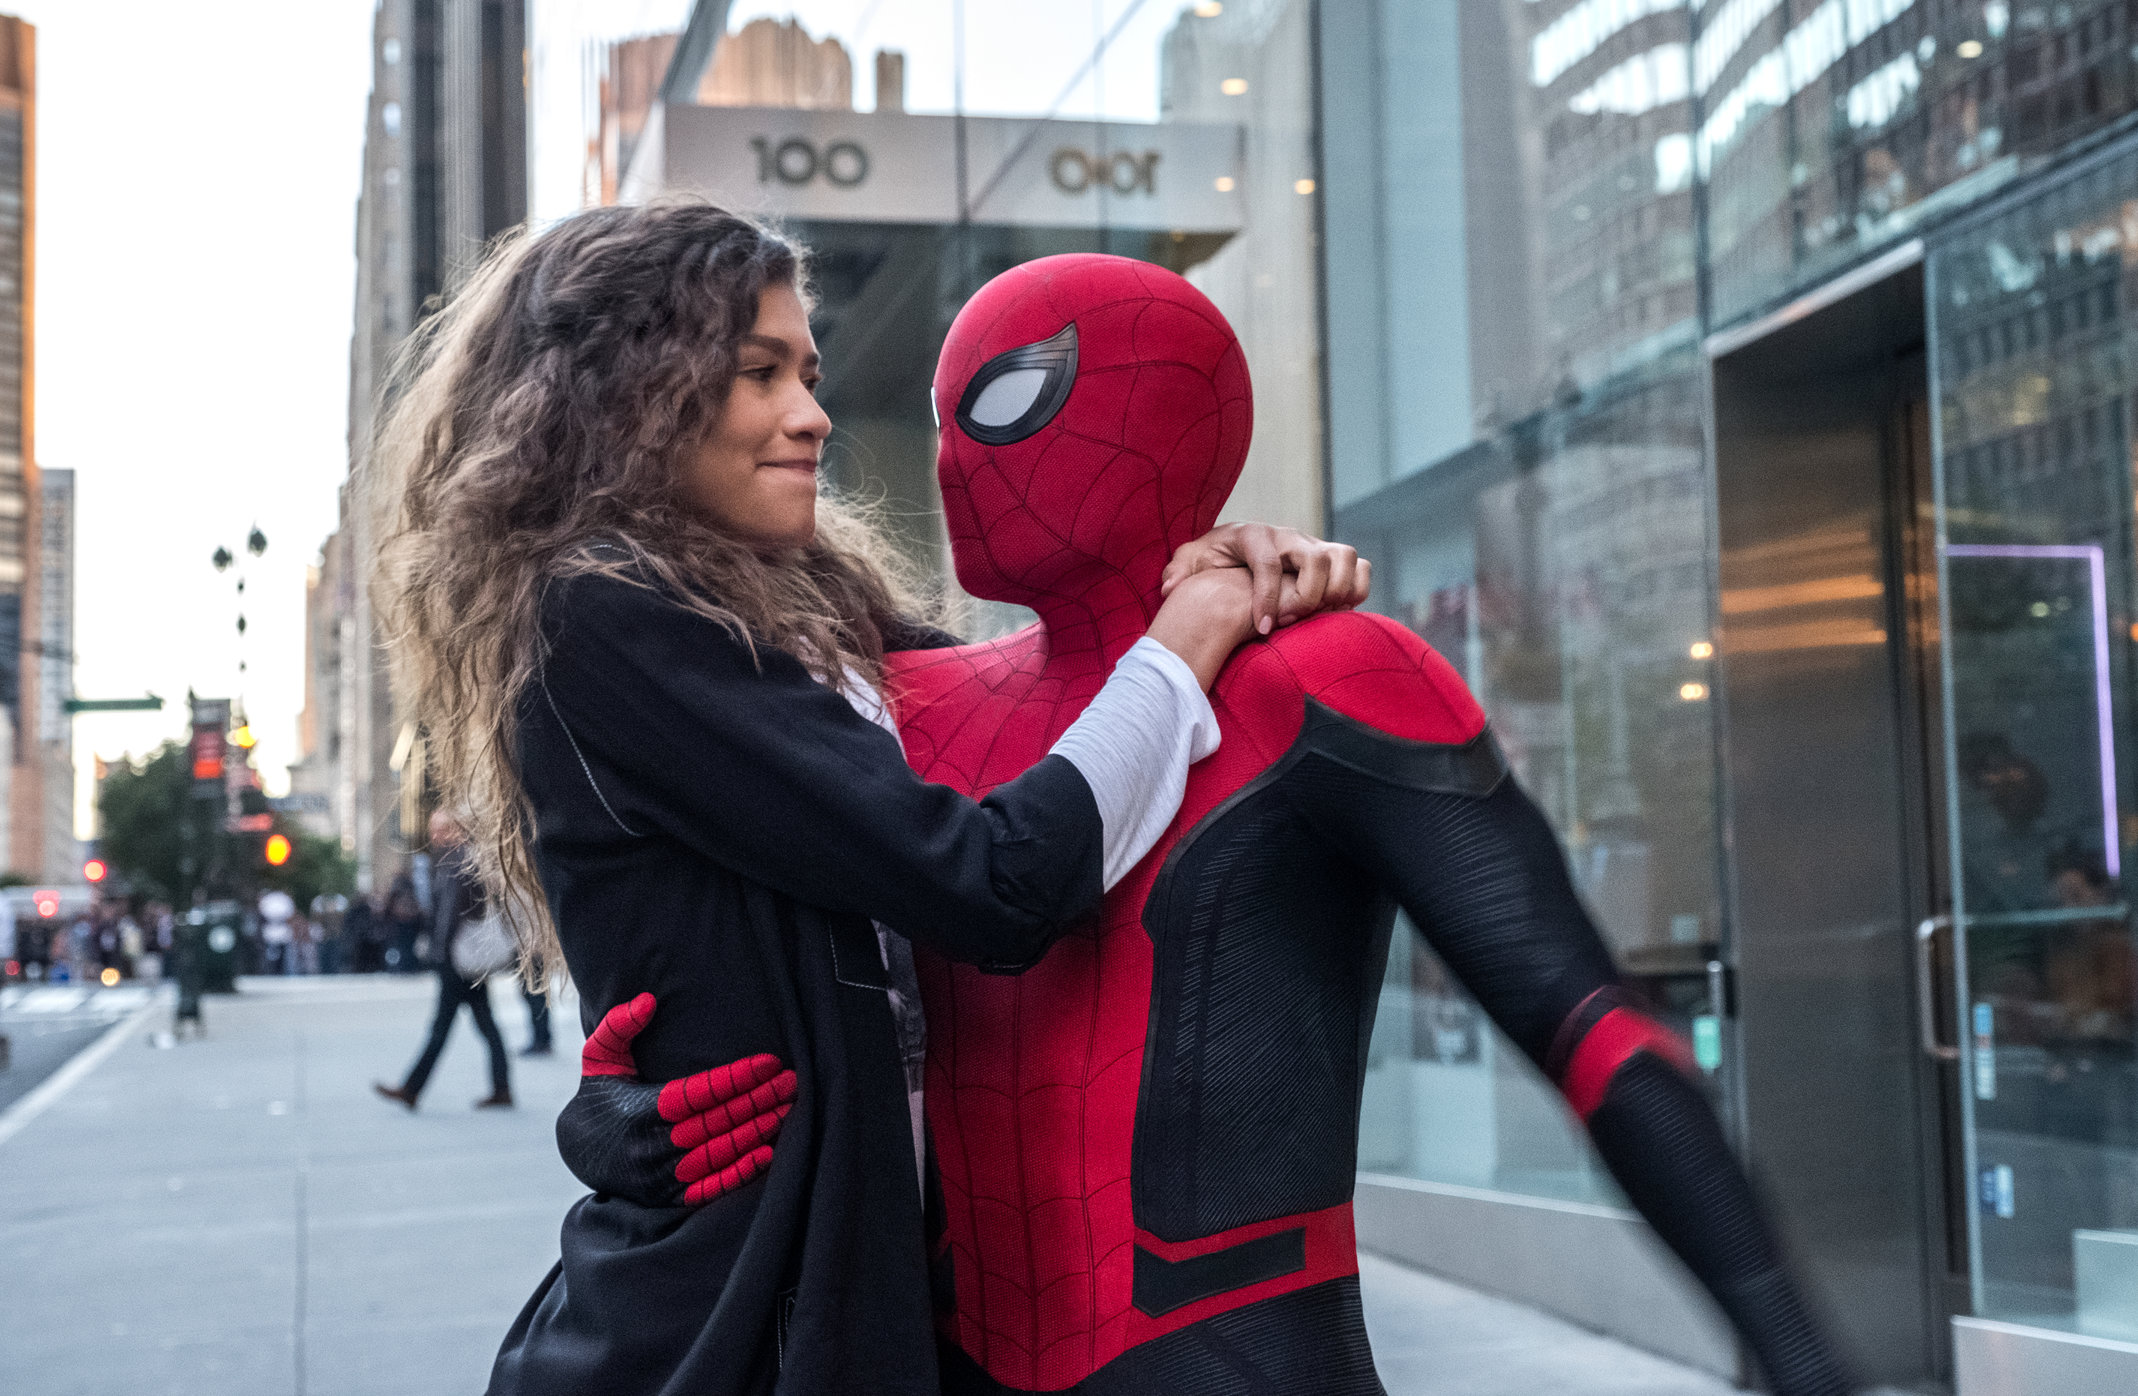 Spiderman Movie Zendaya 2019, Spiderman: Far From Home Movie Release Date, Spiderman: Far From Movie 2019, Zendaya in Spiderman Movie